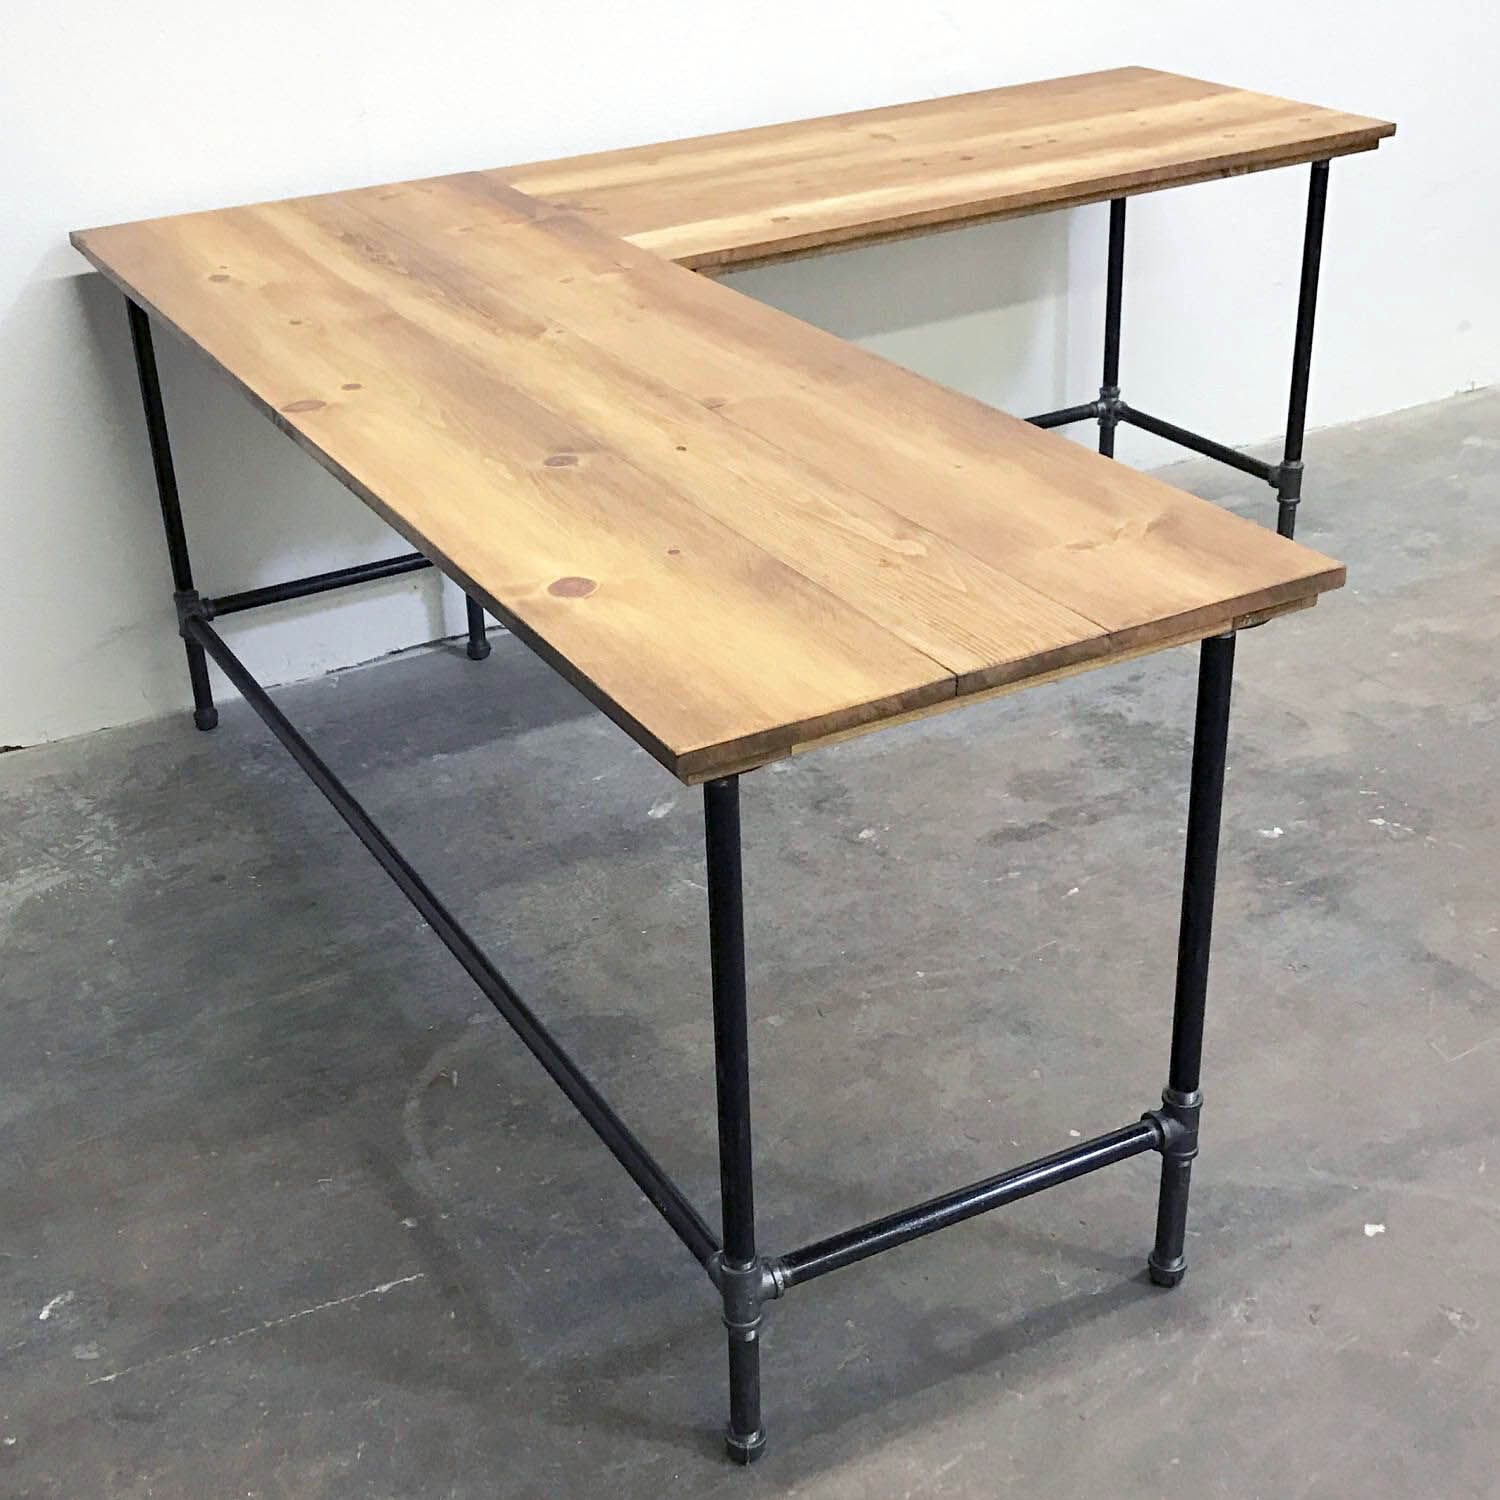 Extraordinary Solid Wooden Desks For Sale Cape Town Just On Planet Home Decor Diy Corner Desk Solid Wood Desk Vintage Industrial Furniture